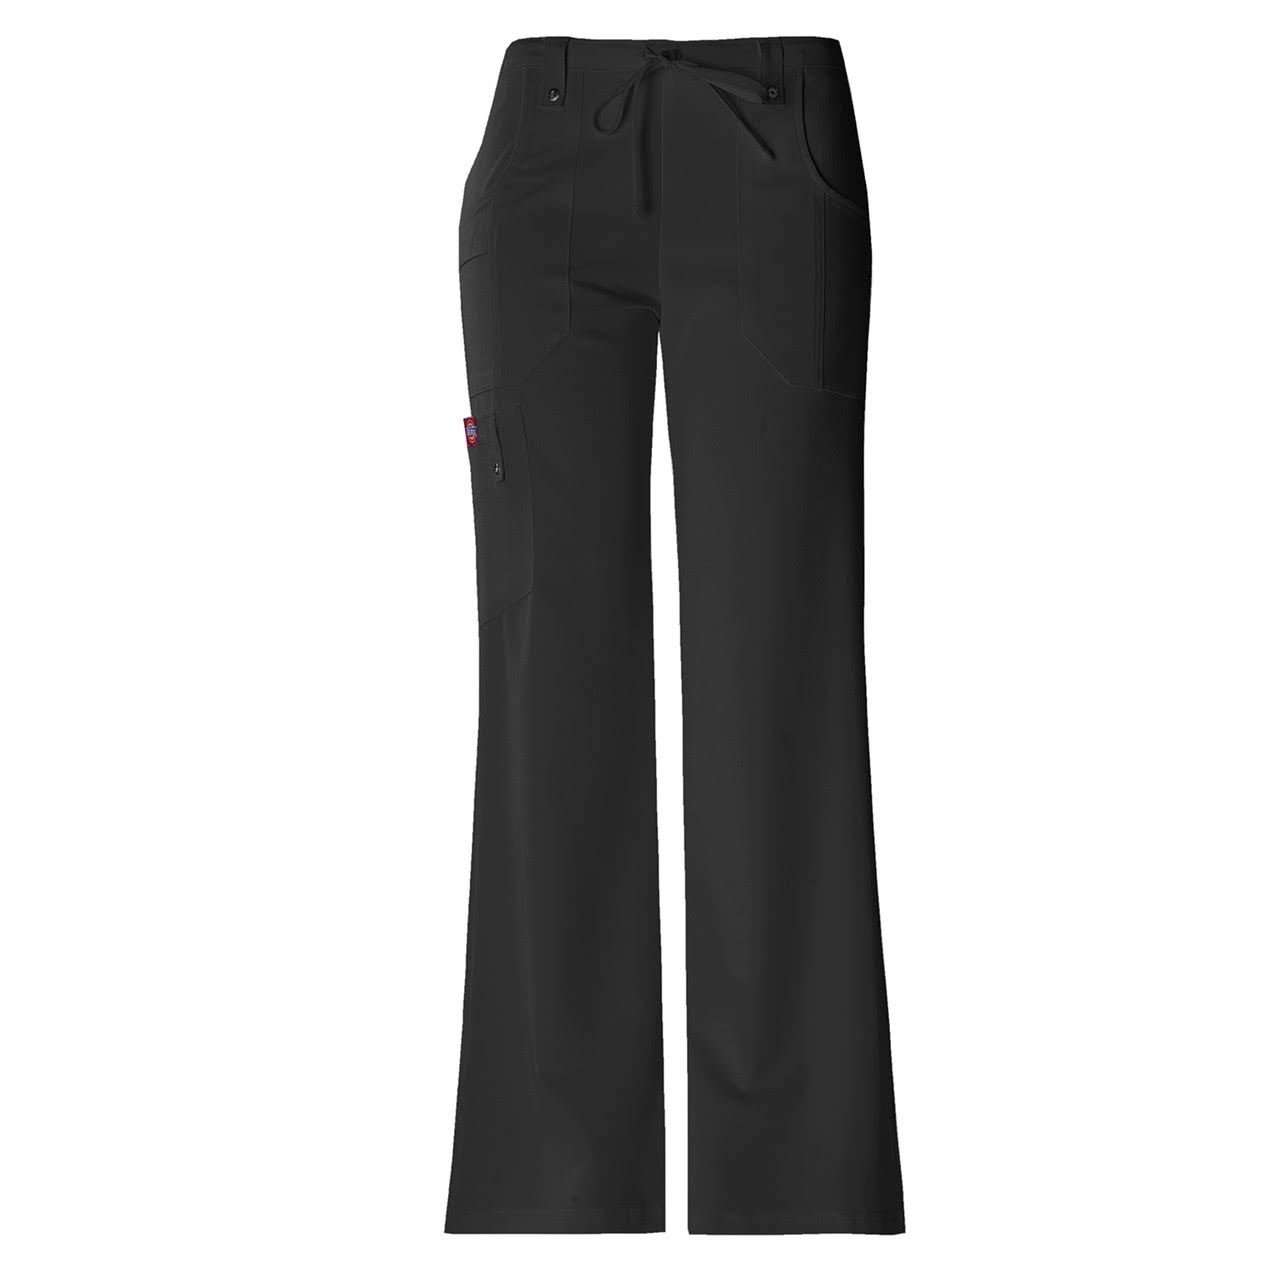 Dickies Women's Xtreme Stretch Tall Drawstring Scrub Pant - L - Black